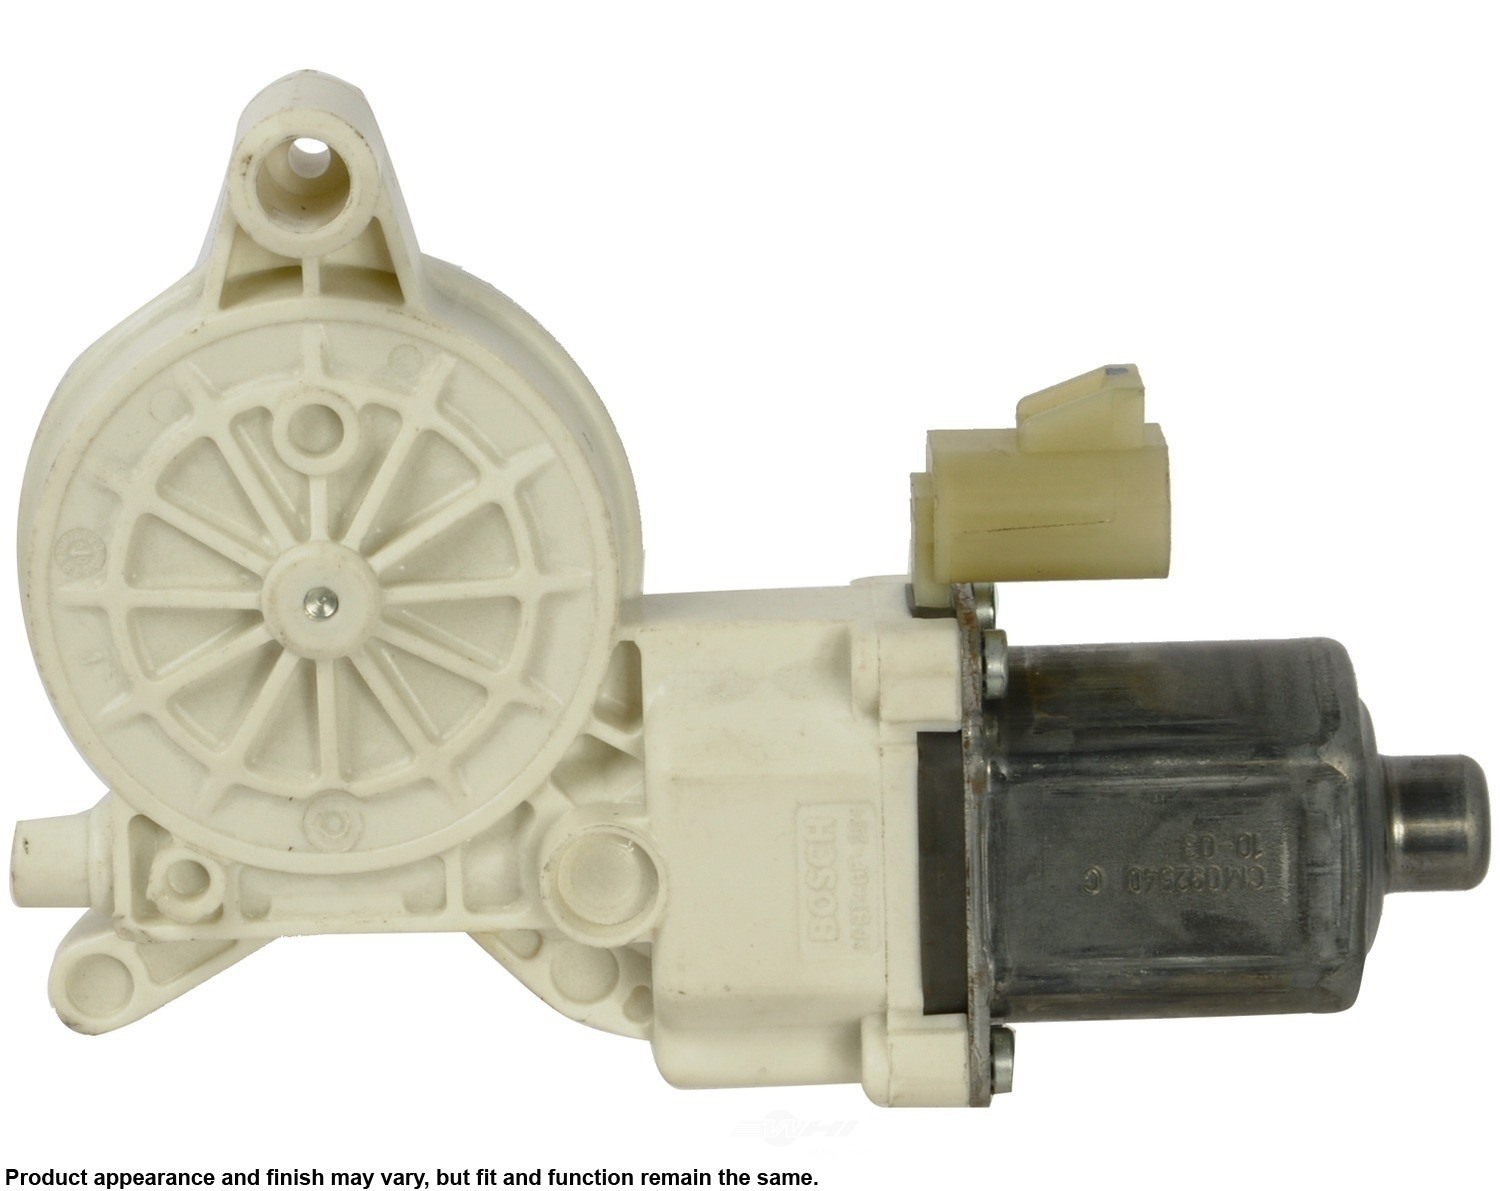 CARDONE NEW - Power Window Motor (Front Right) - A1S 82-1057